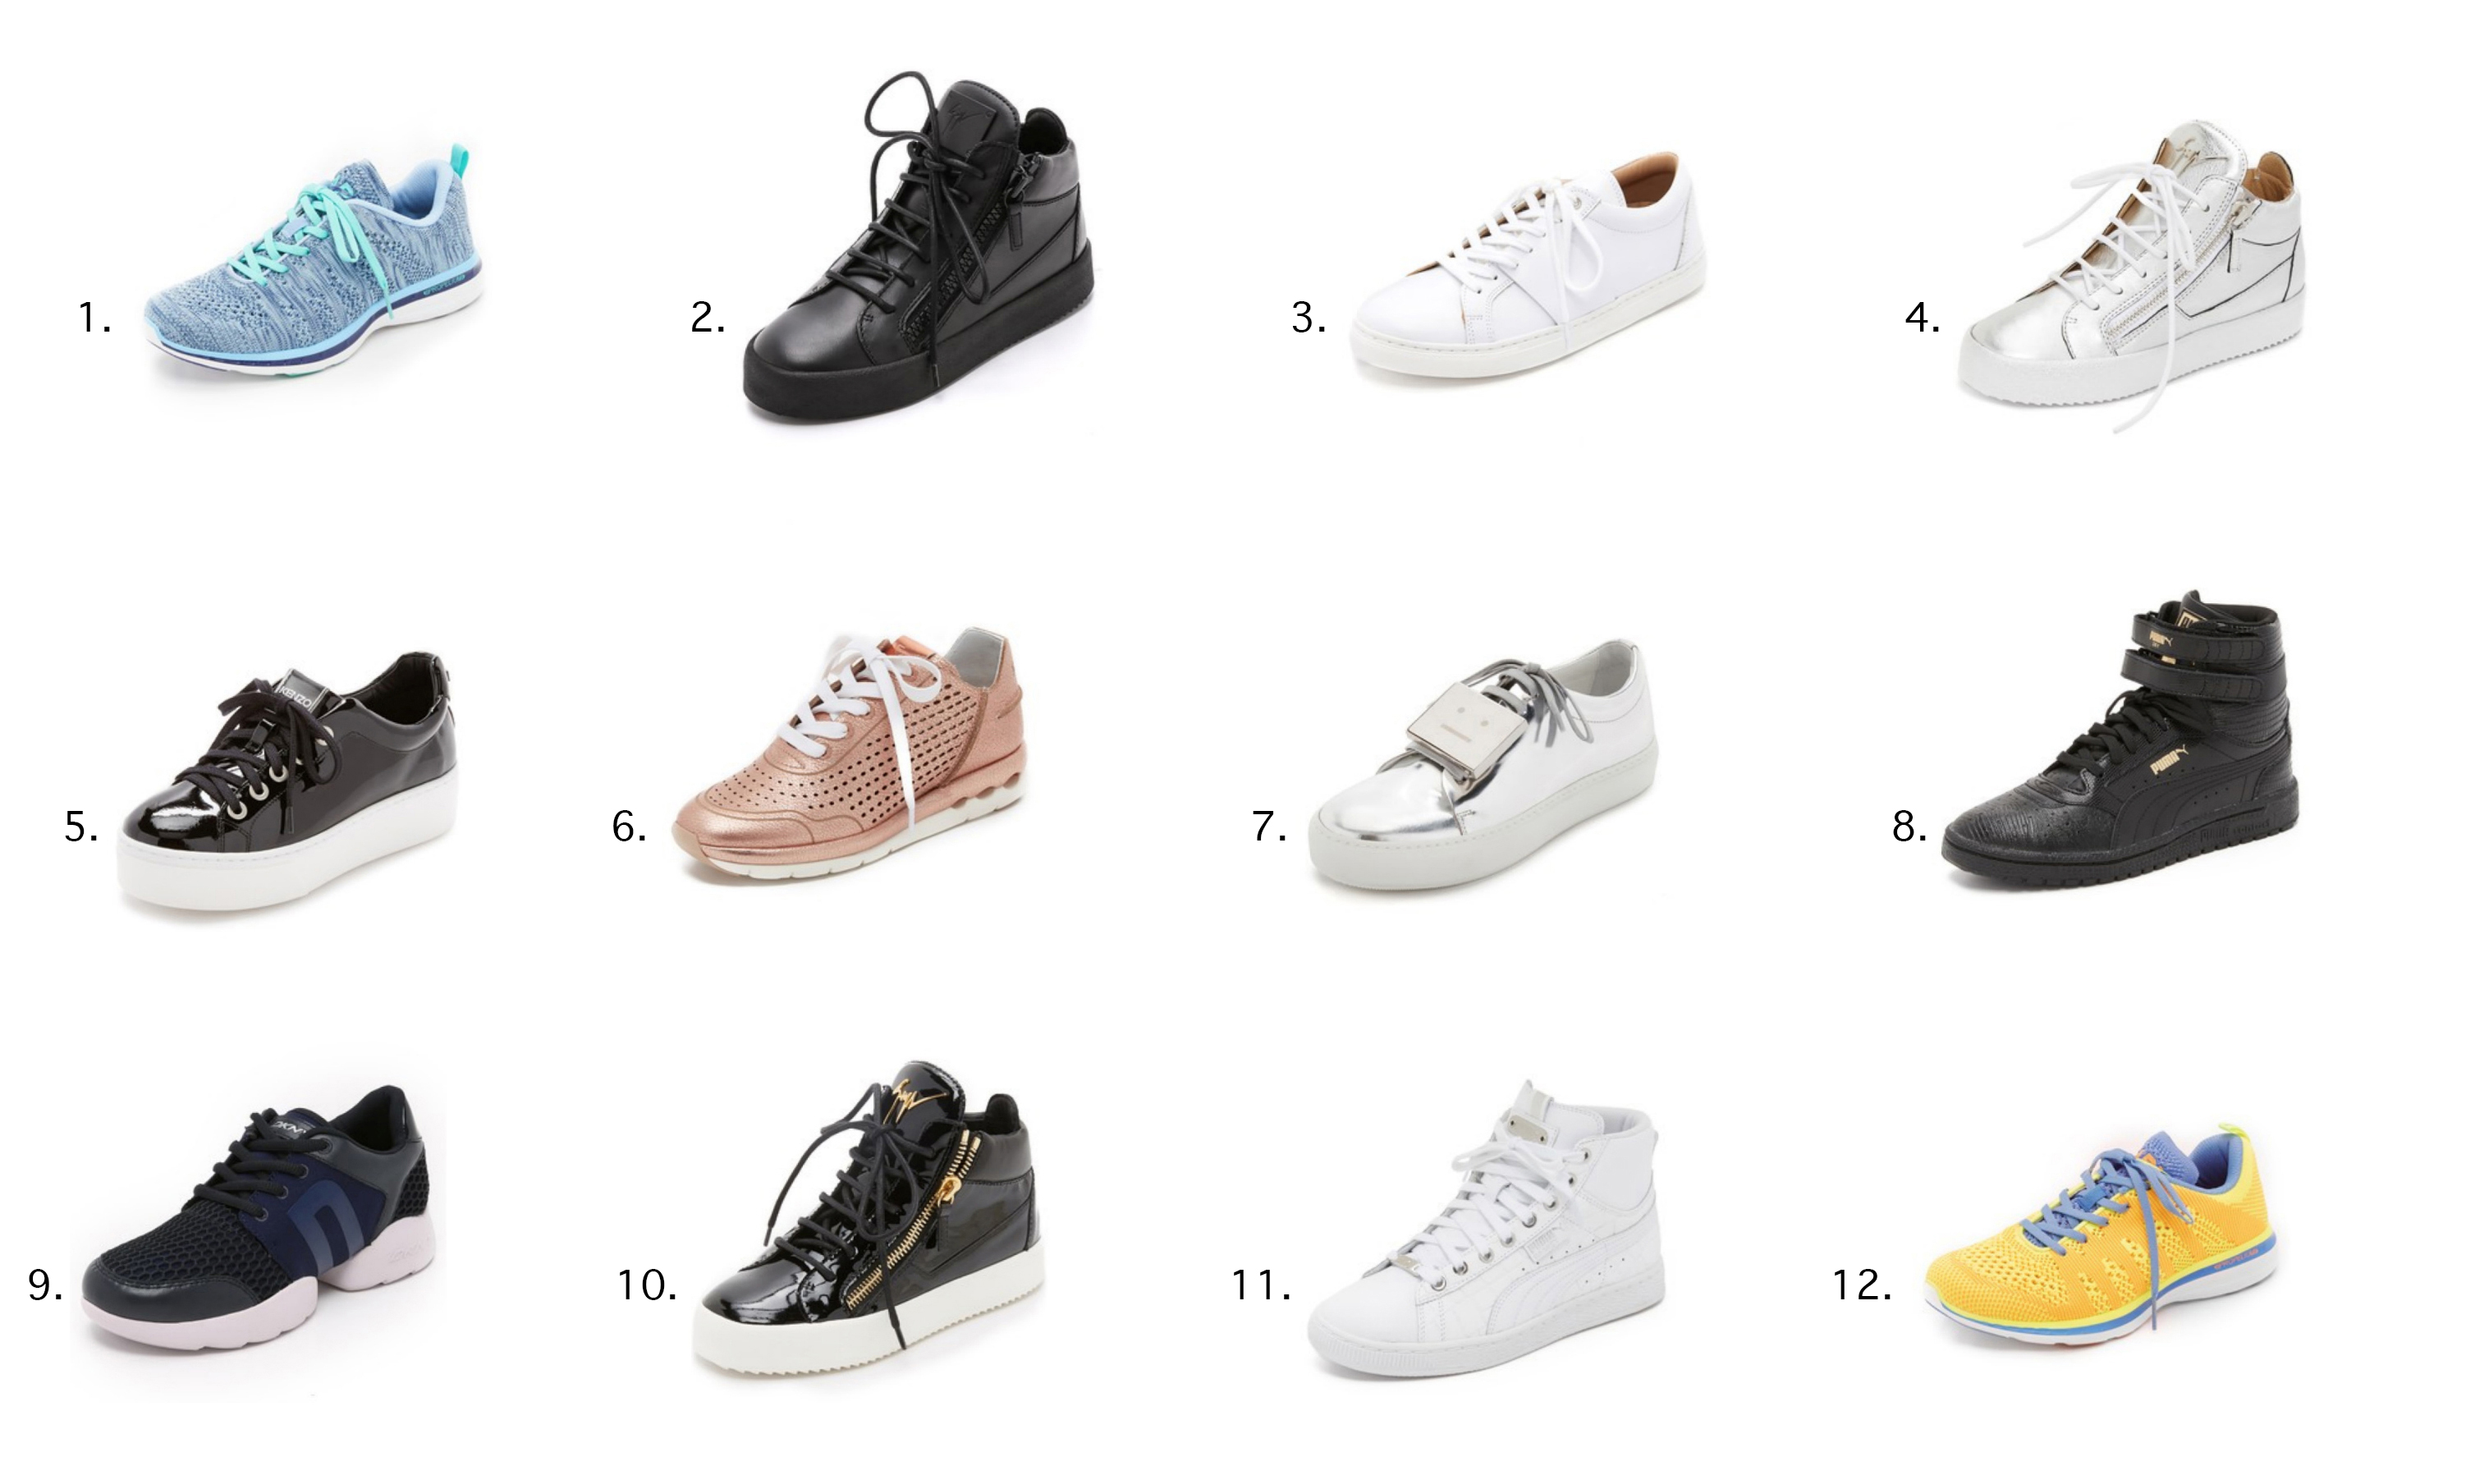 shoes_blickshopbop3